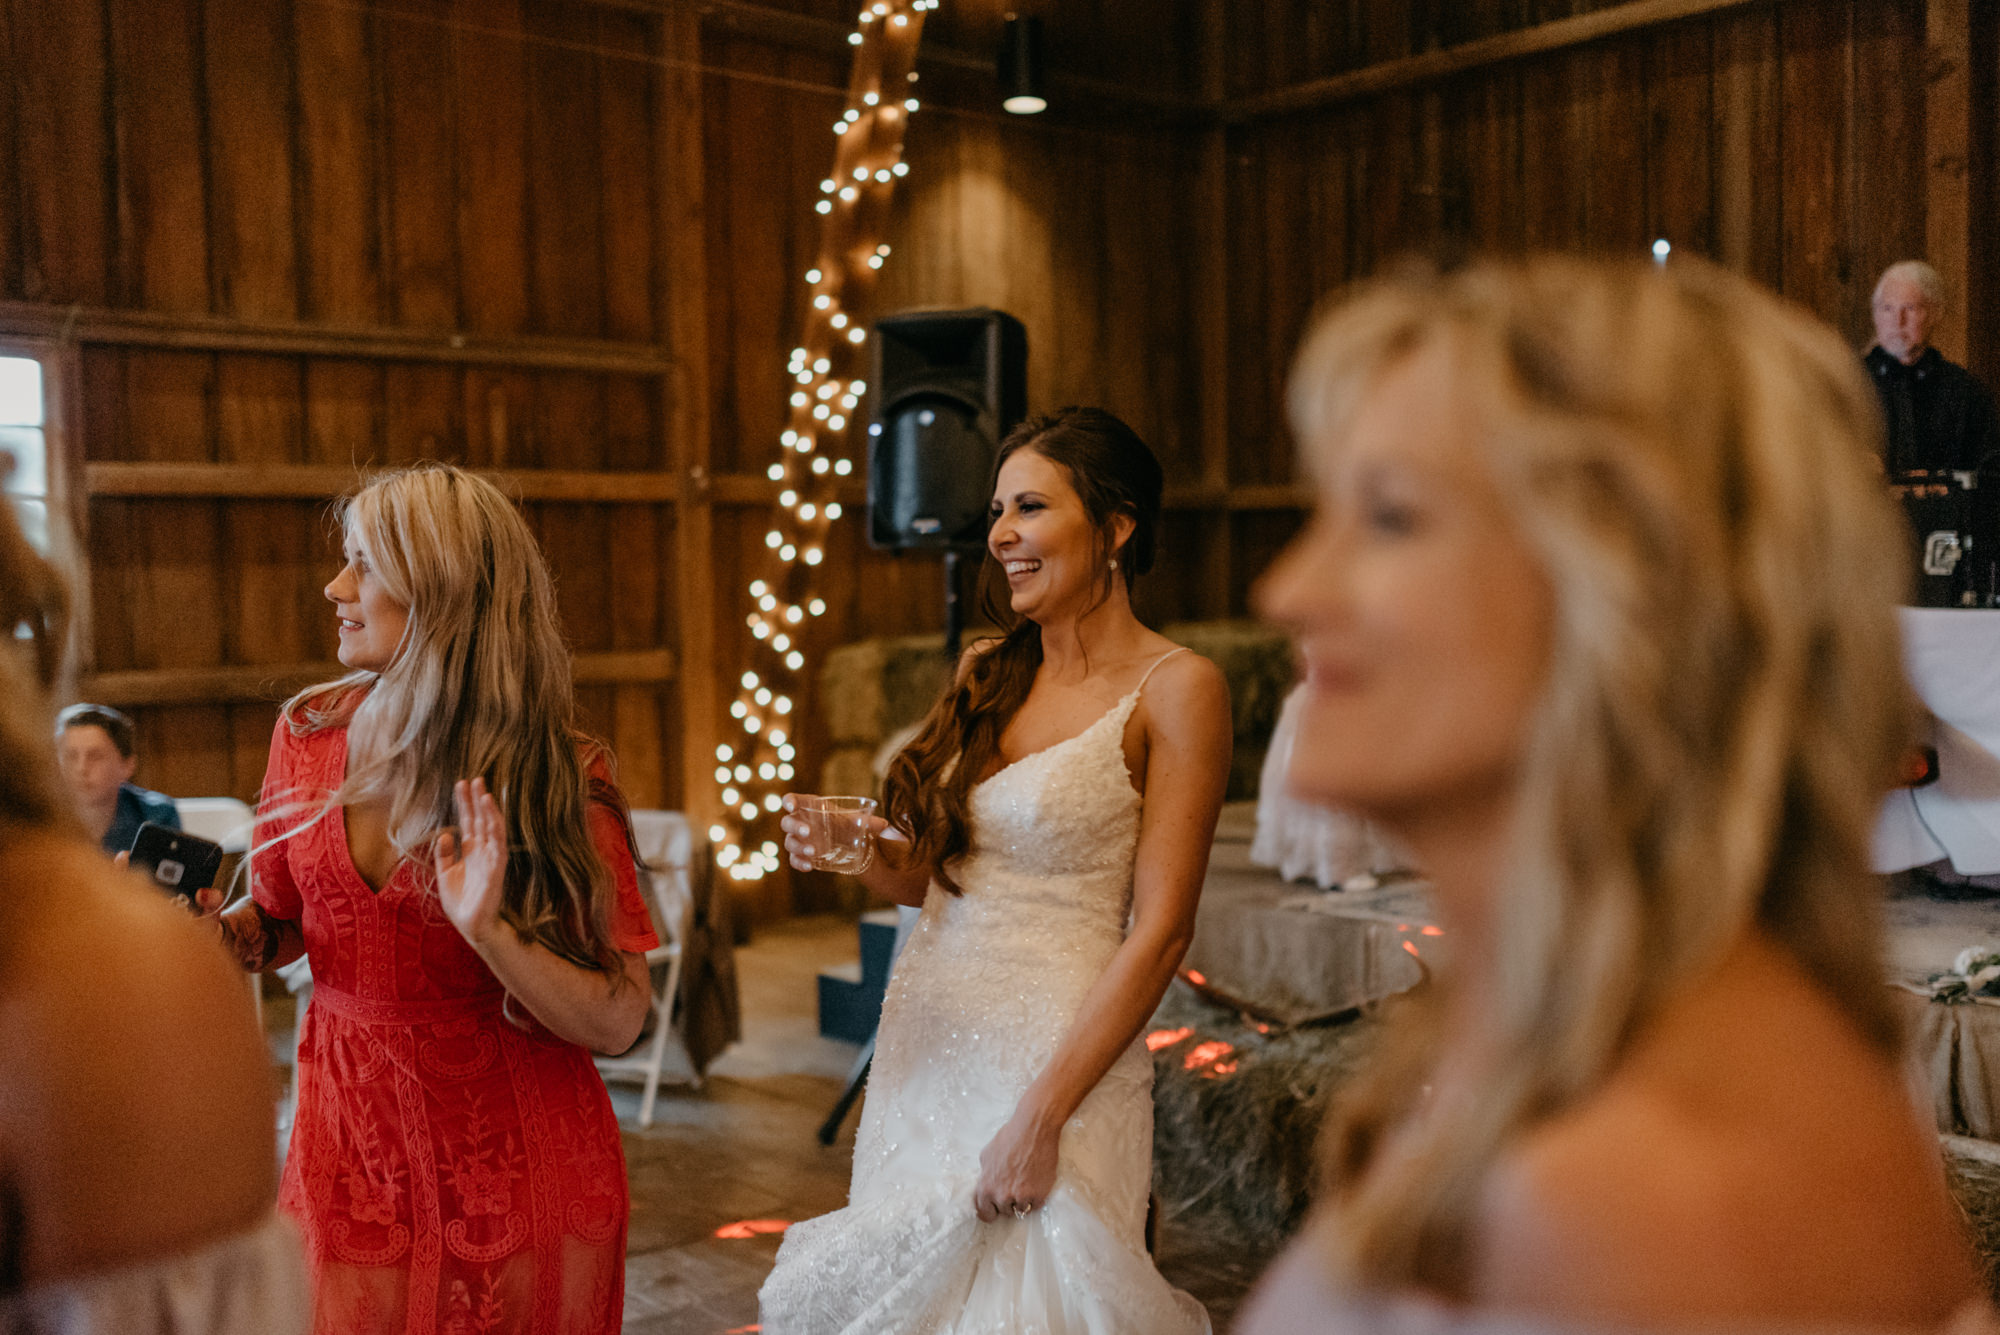 199-portland-northwest-wedding-bubble-exit-barn-string-lights.jpg